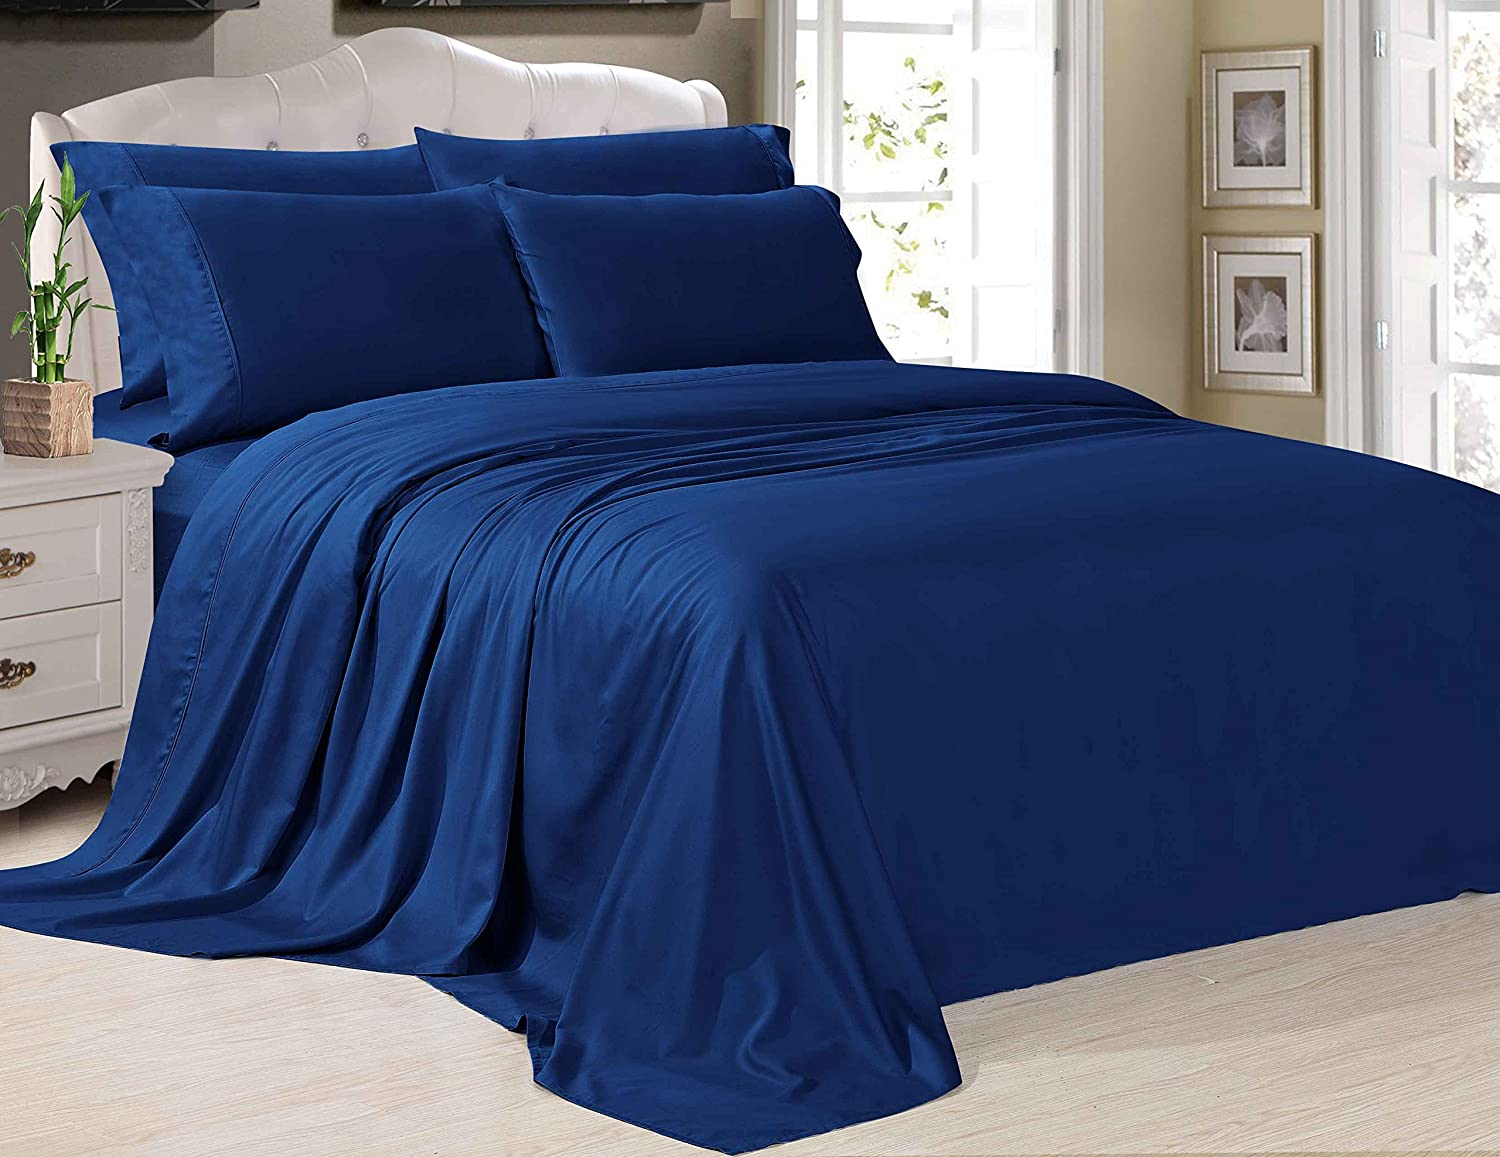 Style Silky Soft Bamboo Cotton Bedding Sheet Set - Queen, Navy